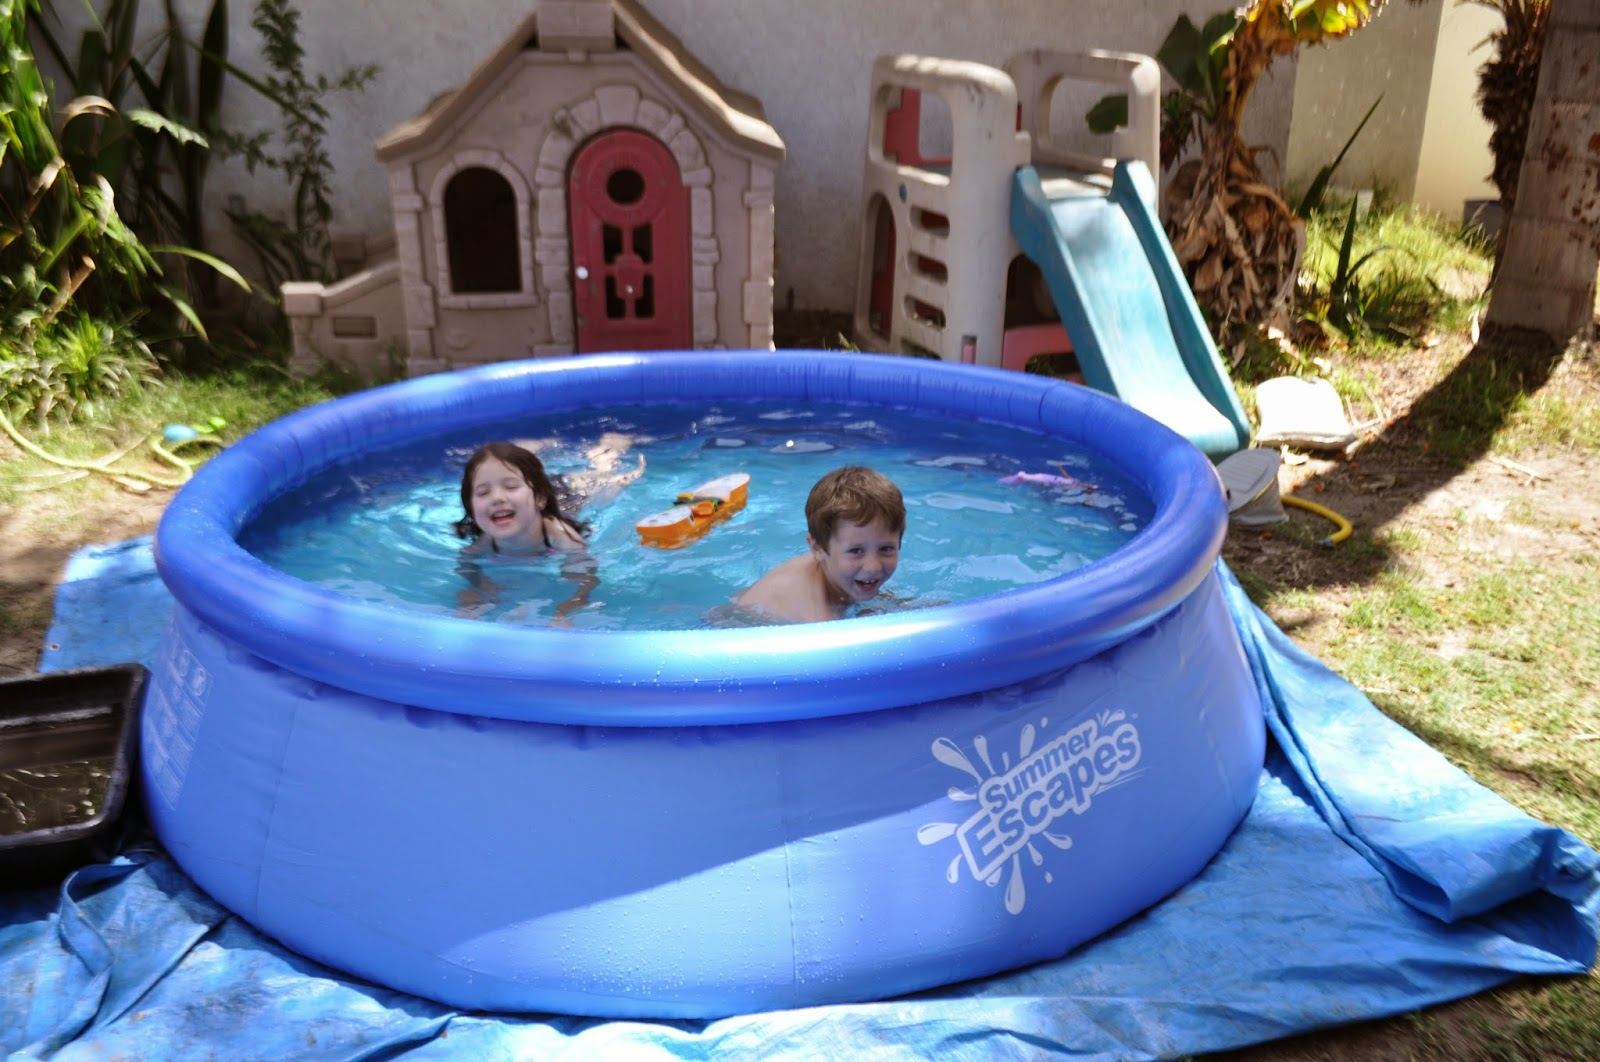 socal kids outdoor adventures product review cool off in a backyard